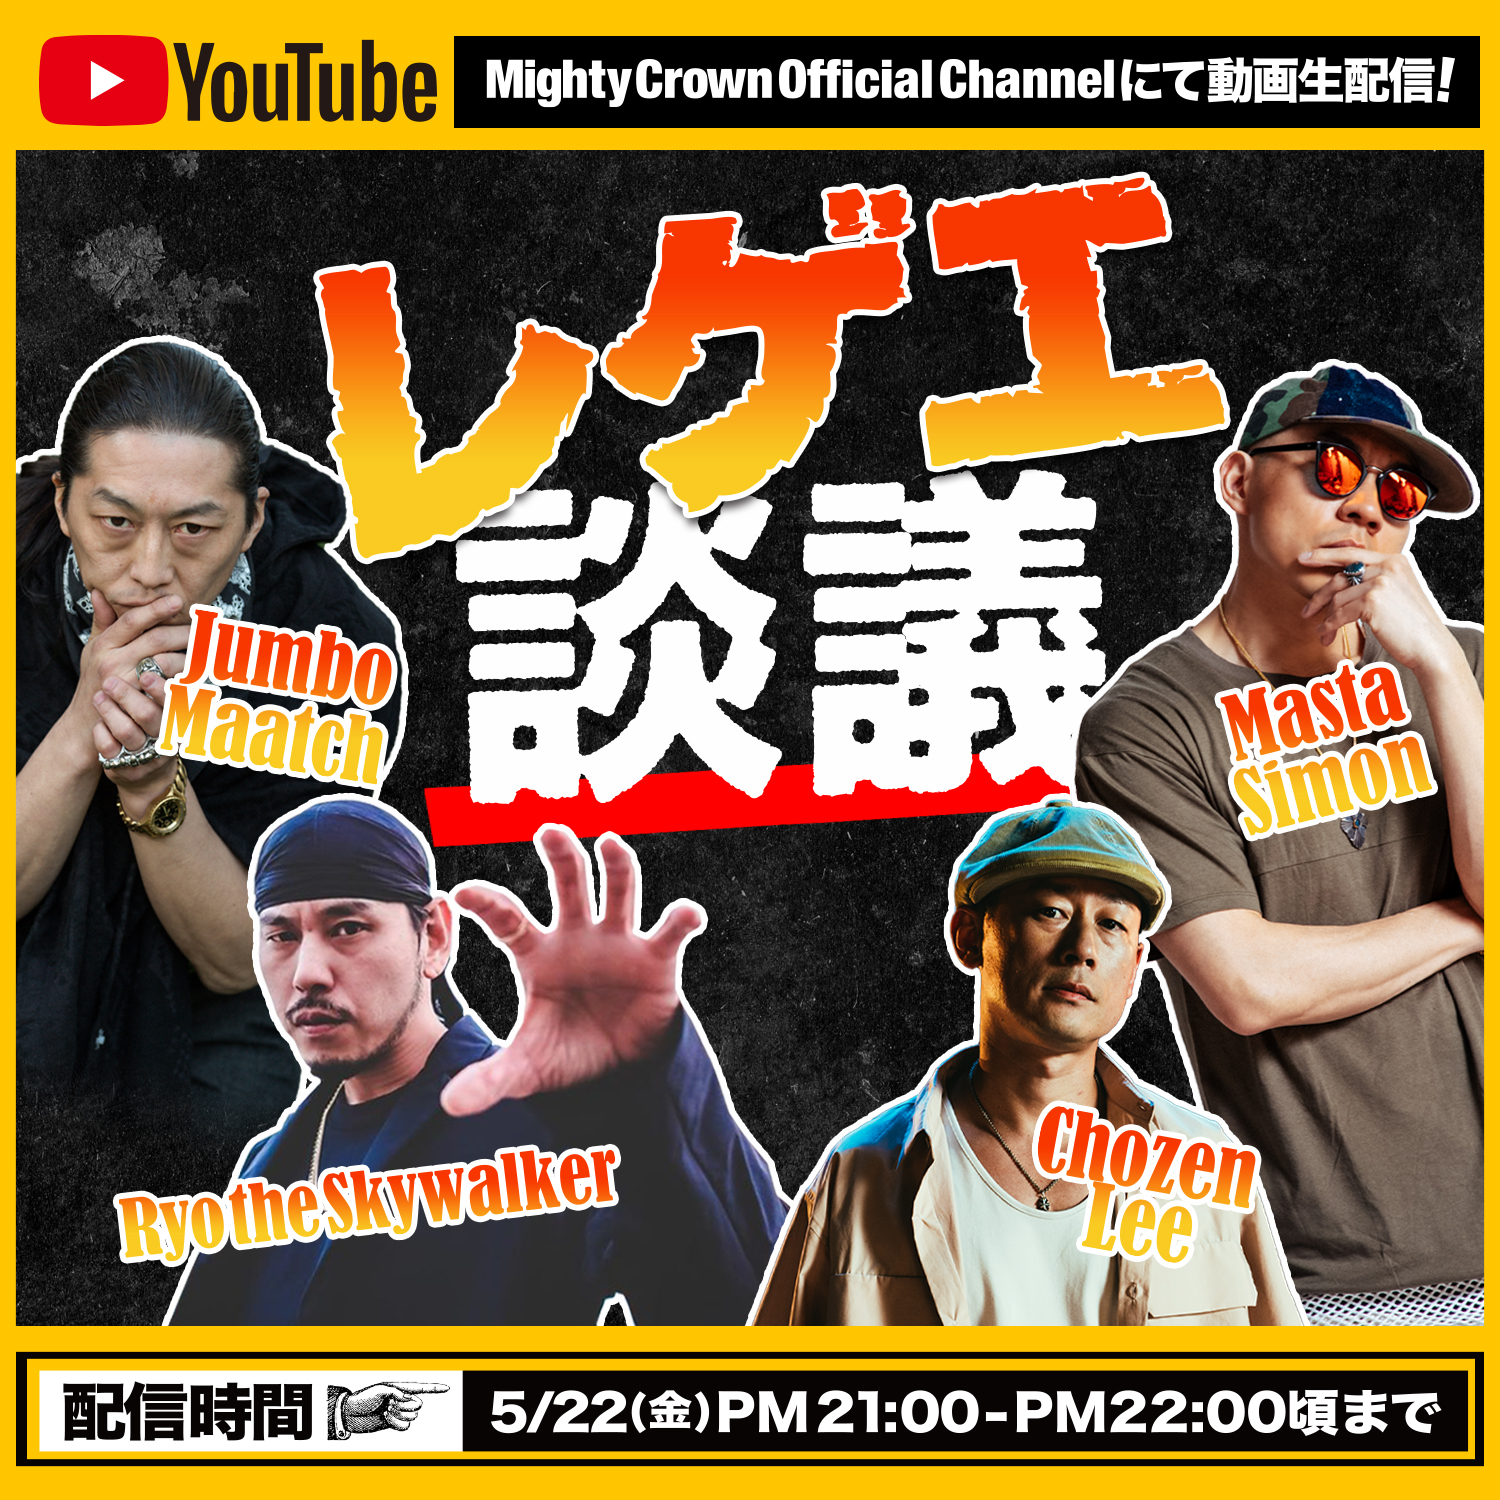 JUMBO MAATCH出演 5/22(金)放送「レゲエ談議 at MIGHTY CROWN YouTube」